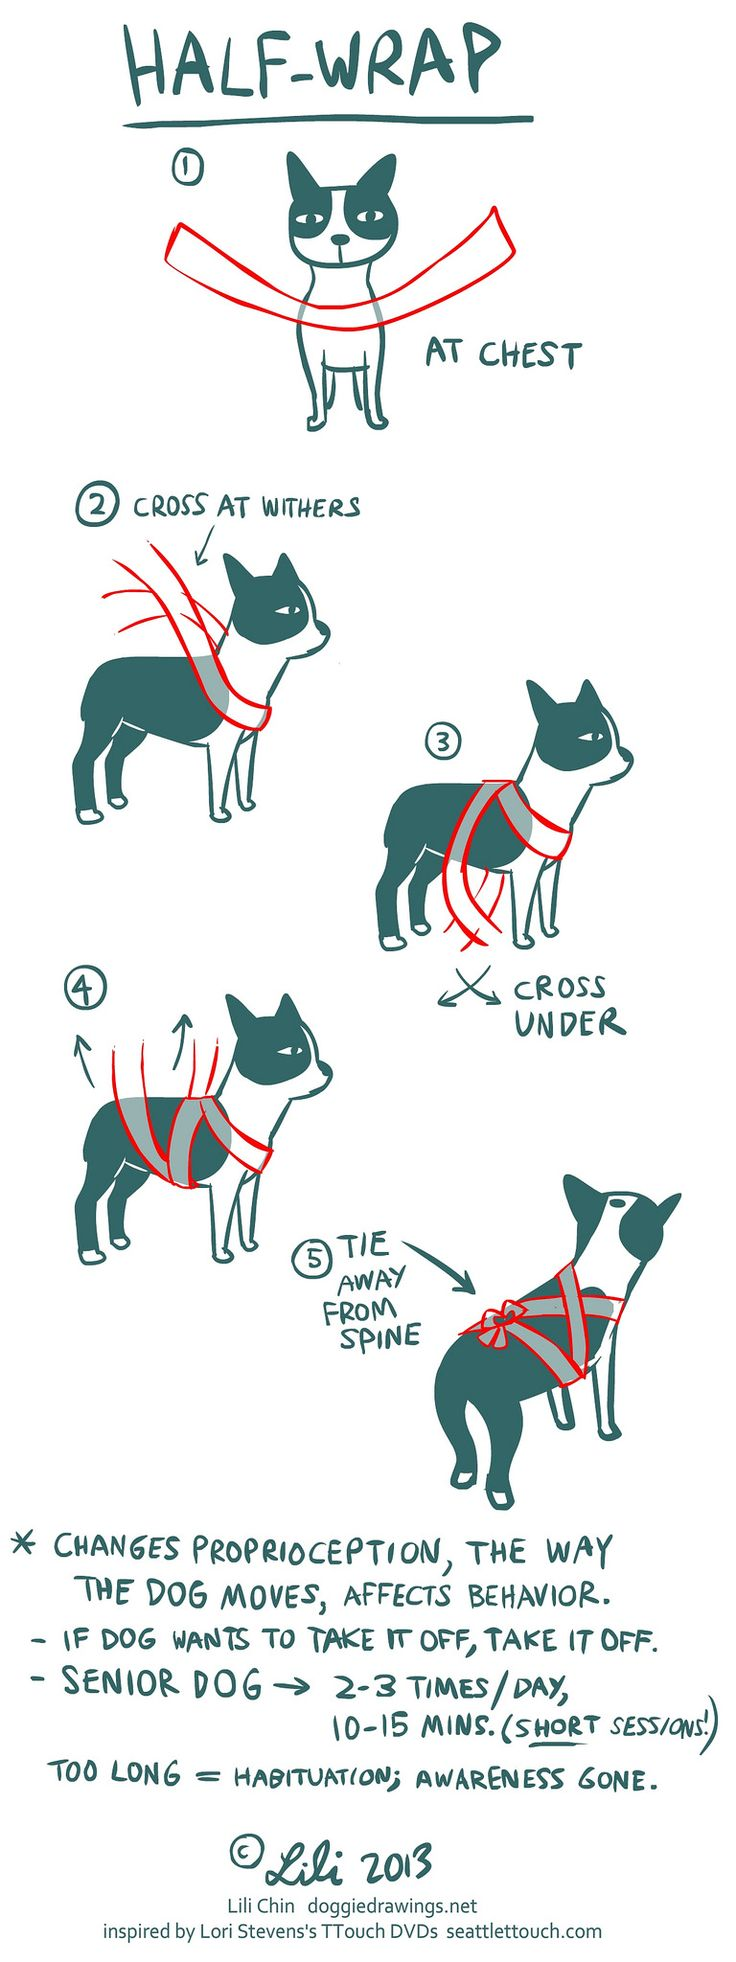 Homemade Thundershirt - Help alleviate your dog's noise phobia fears (fireworks, thunderstorms, etc.) with just a simple Ace bandage!